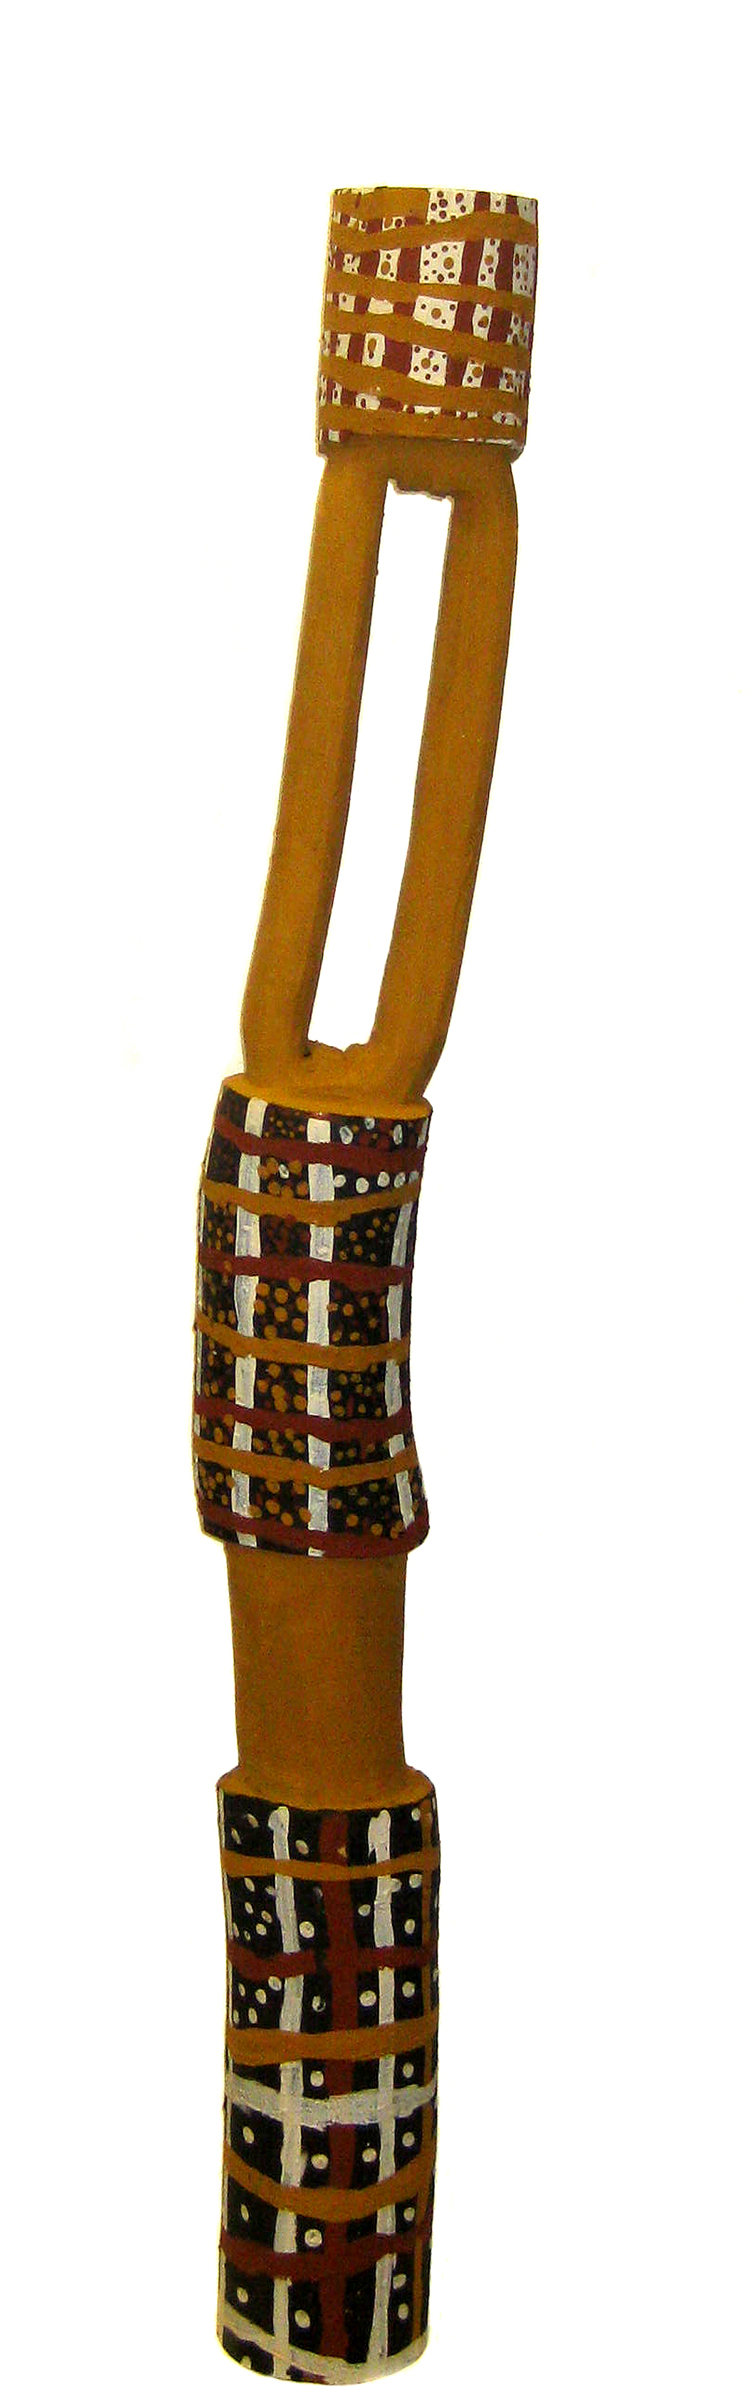 Timothy Cook Kulama Ocher on Carved Ironwood  44 inches Jilamara Arts & Crafts Catalog #157-11   EMAIL INQUIRY